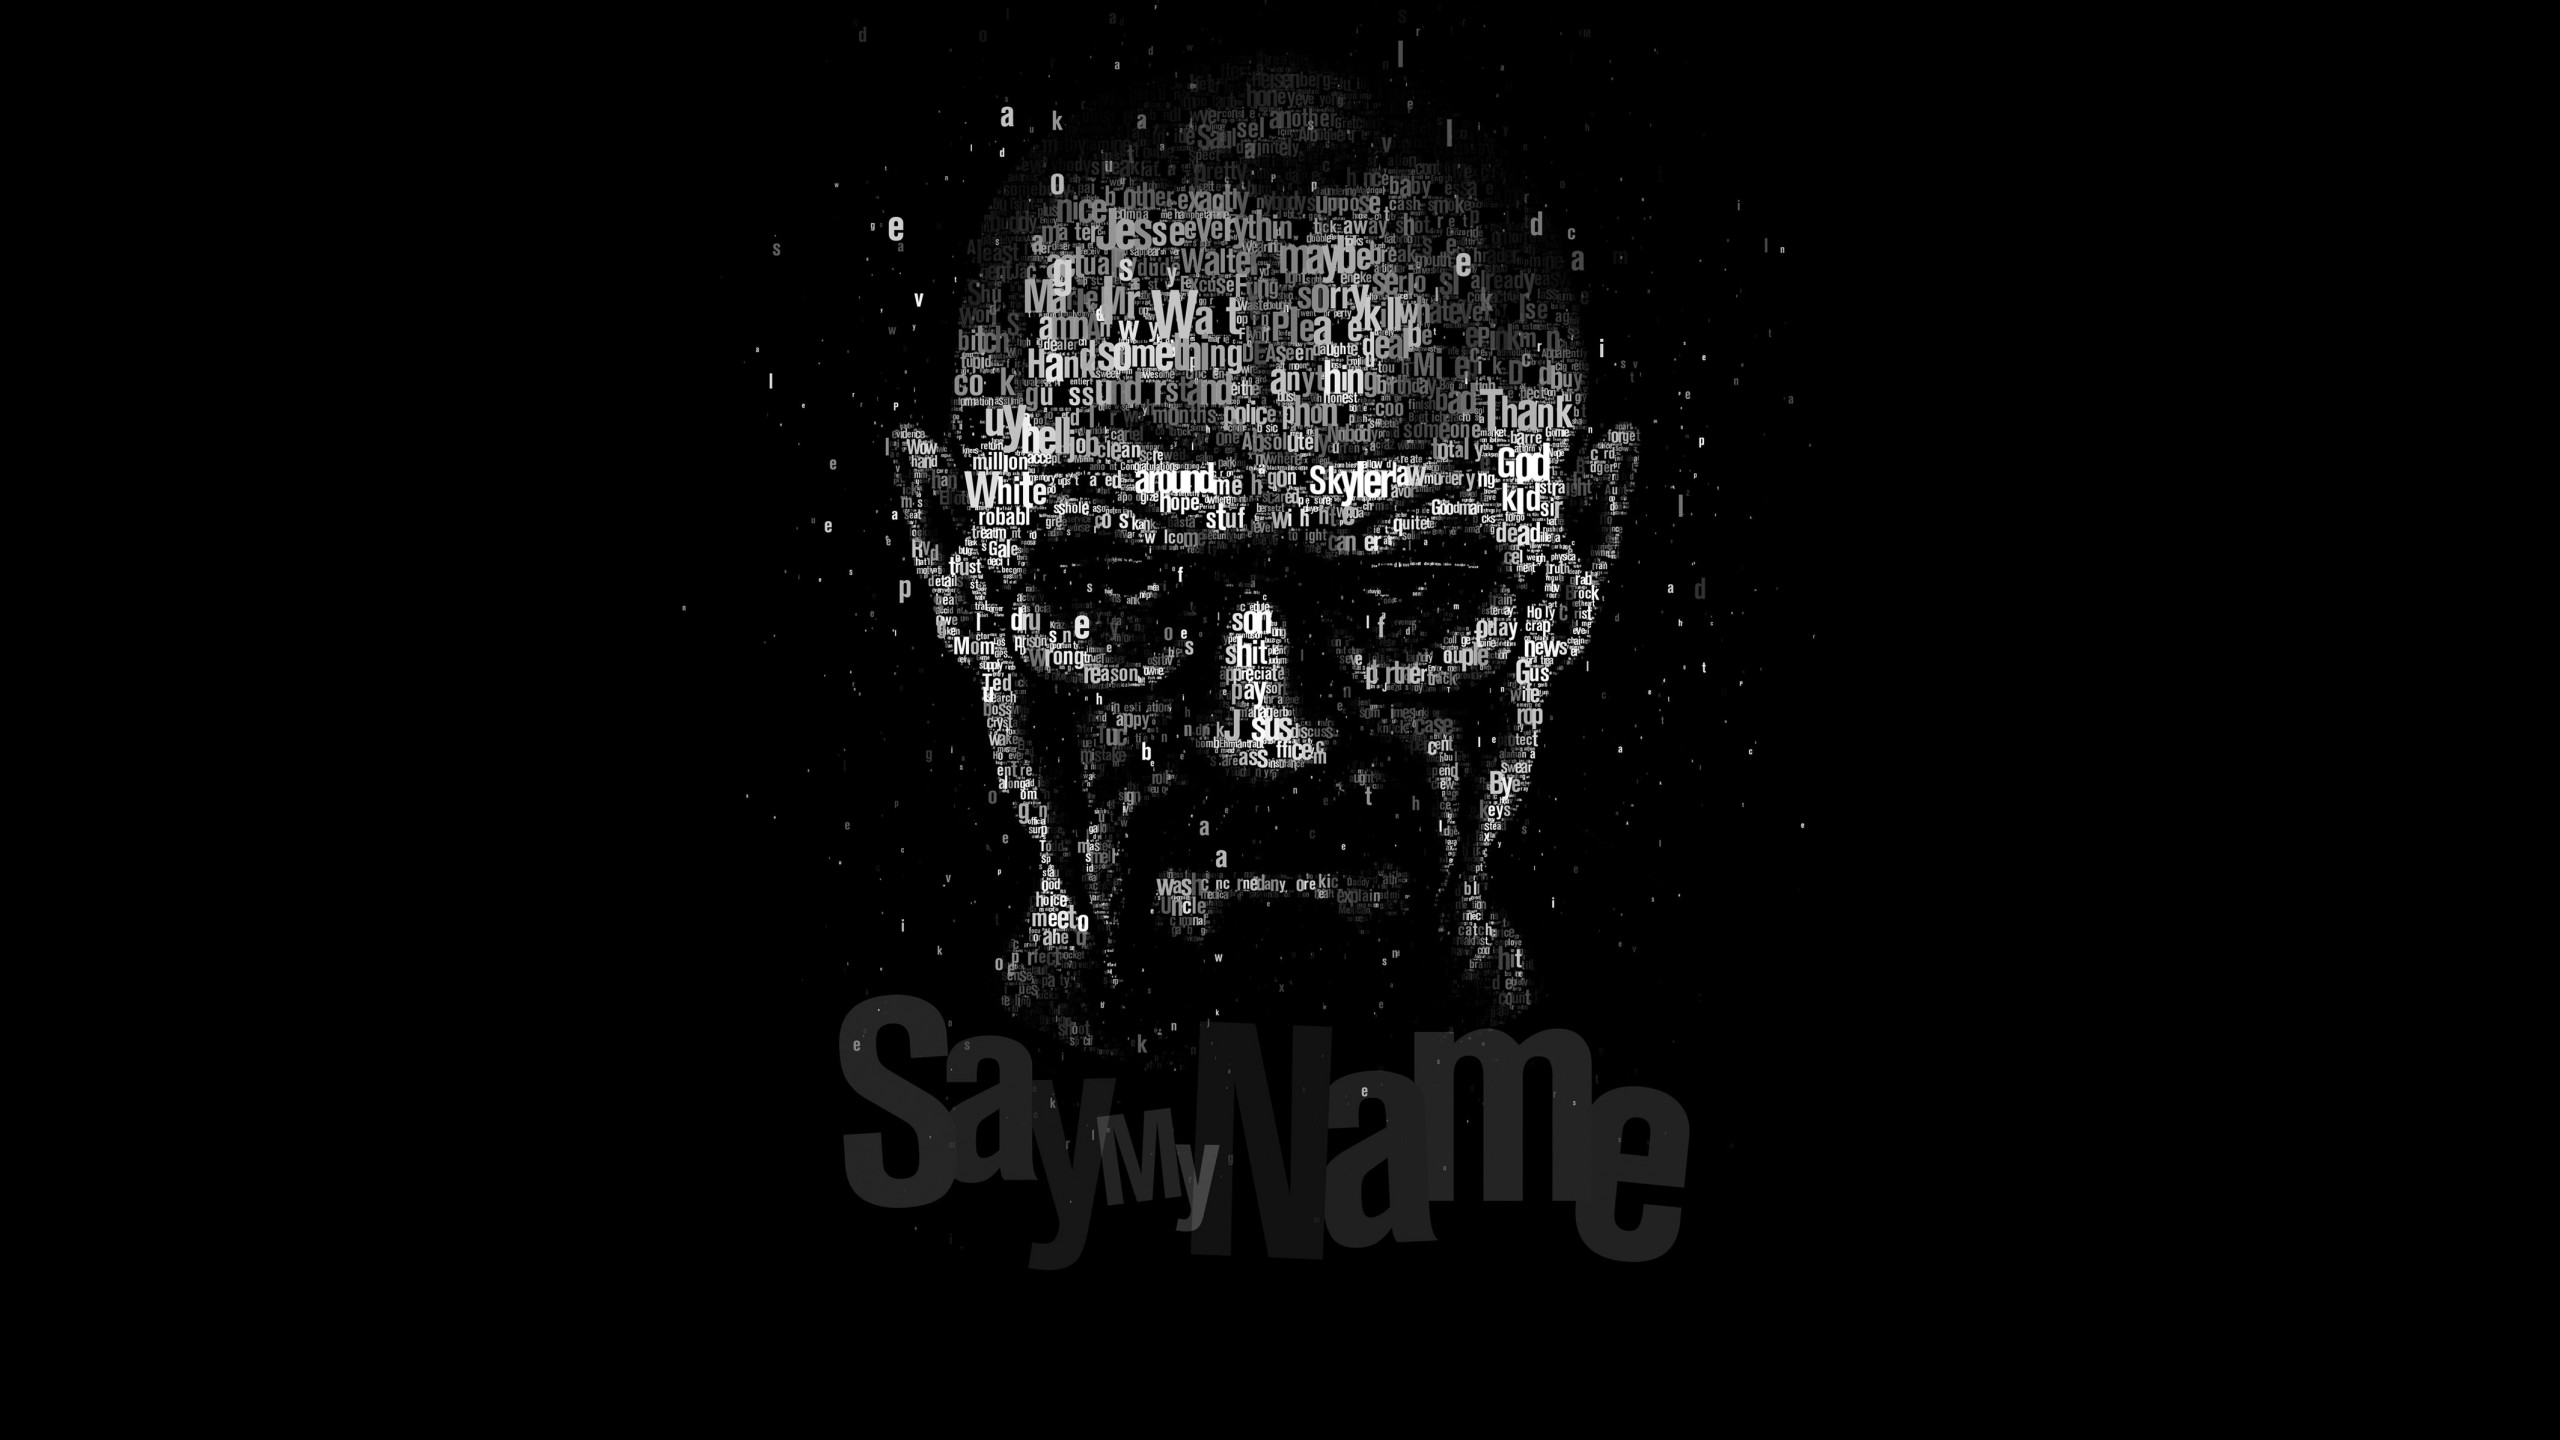 Say My Name - Typography Art Wallpaper for Desktop 2560x1440